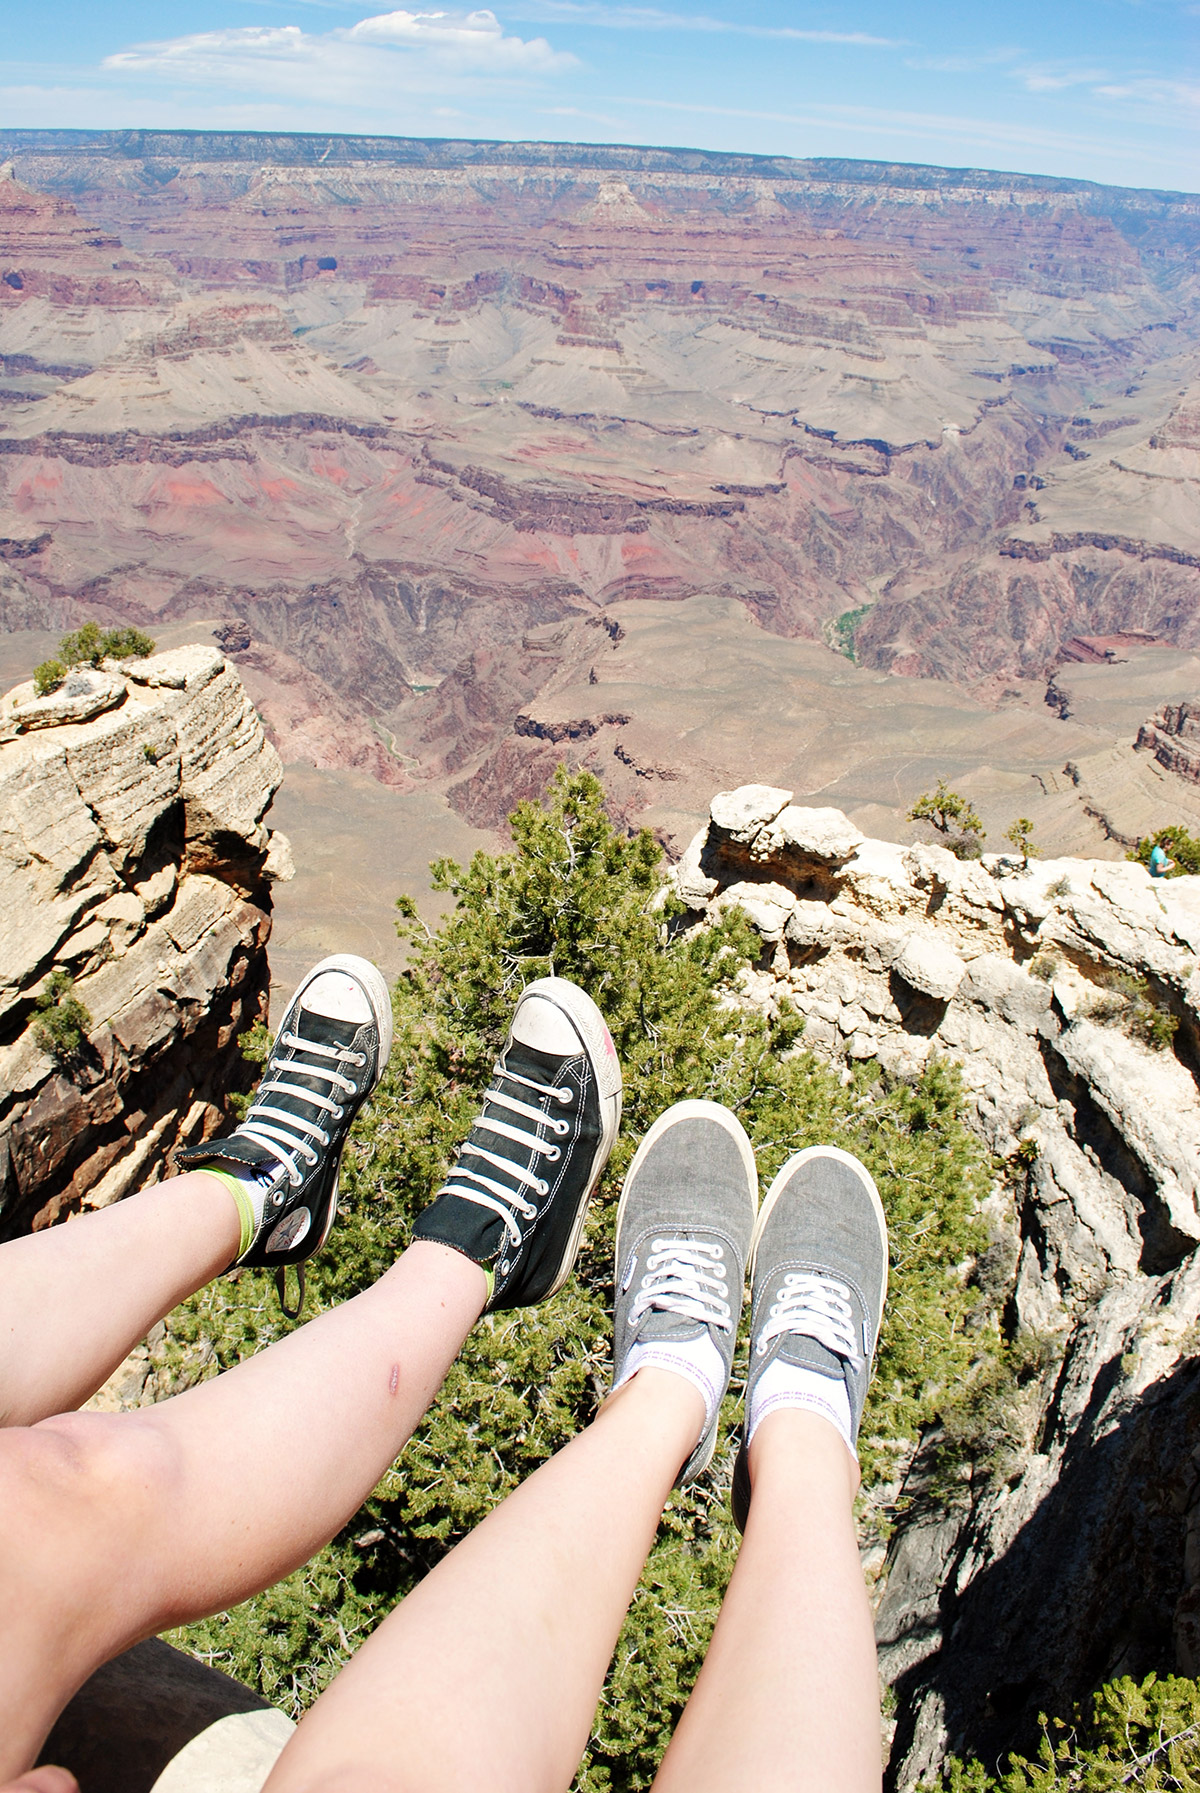 Looking down into the Grand Canyon